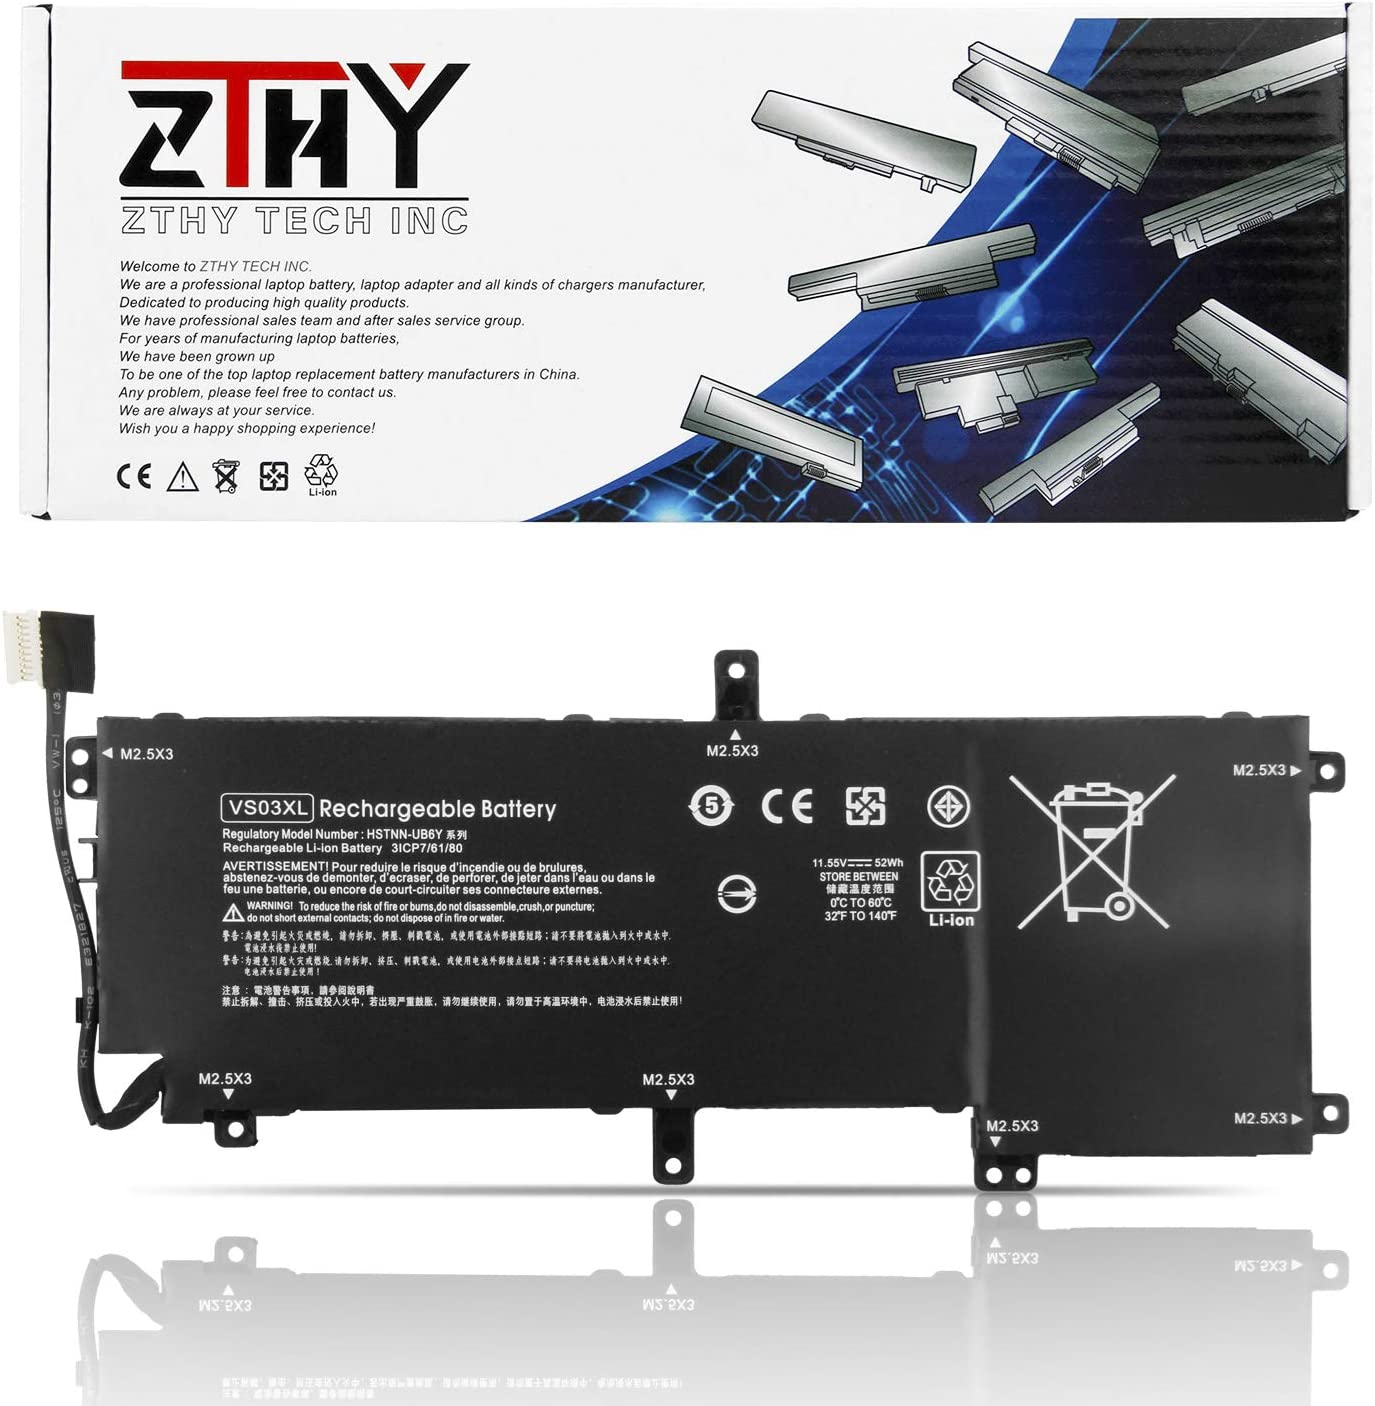 ZTHY 52Wh VS03XL Laptop Battery for HP Envy 15-AS 15-AS000 AS001NG AS101NG AS005NG AS003NG AS004NG AS006NG AS014WM AS091MS AS025TU AS027TU AS032TU AS101NG AS133CL 849047-541 849313-850 HSTNN-UB6Y